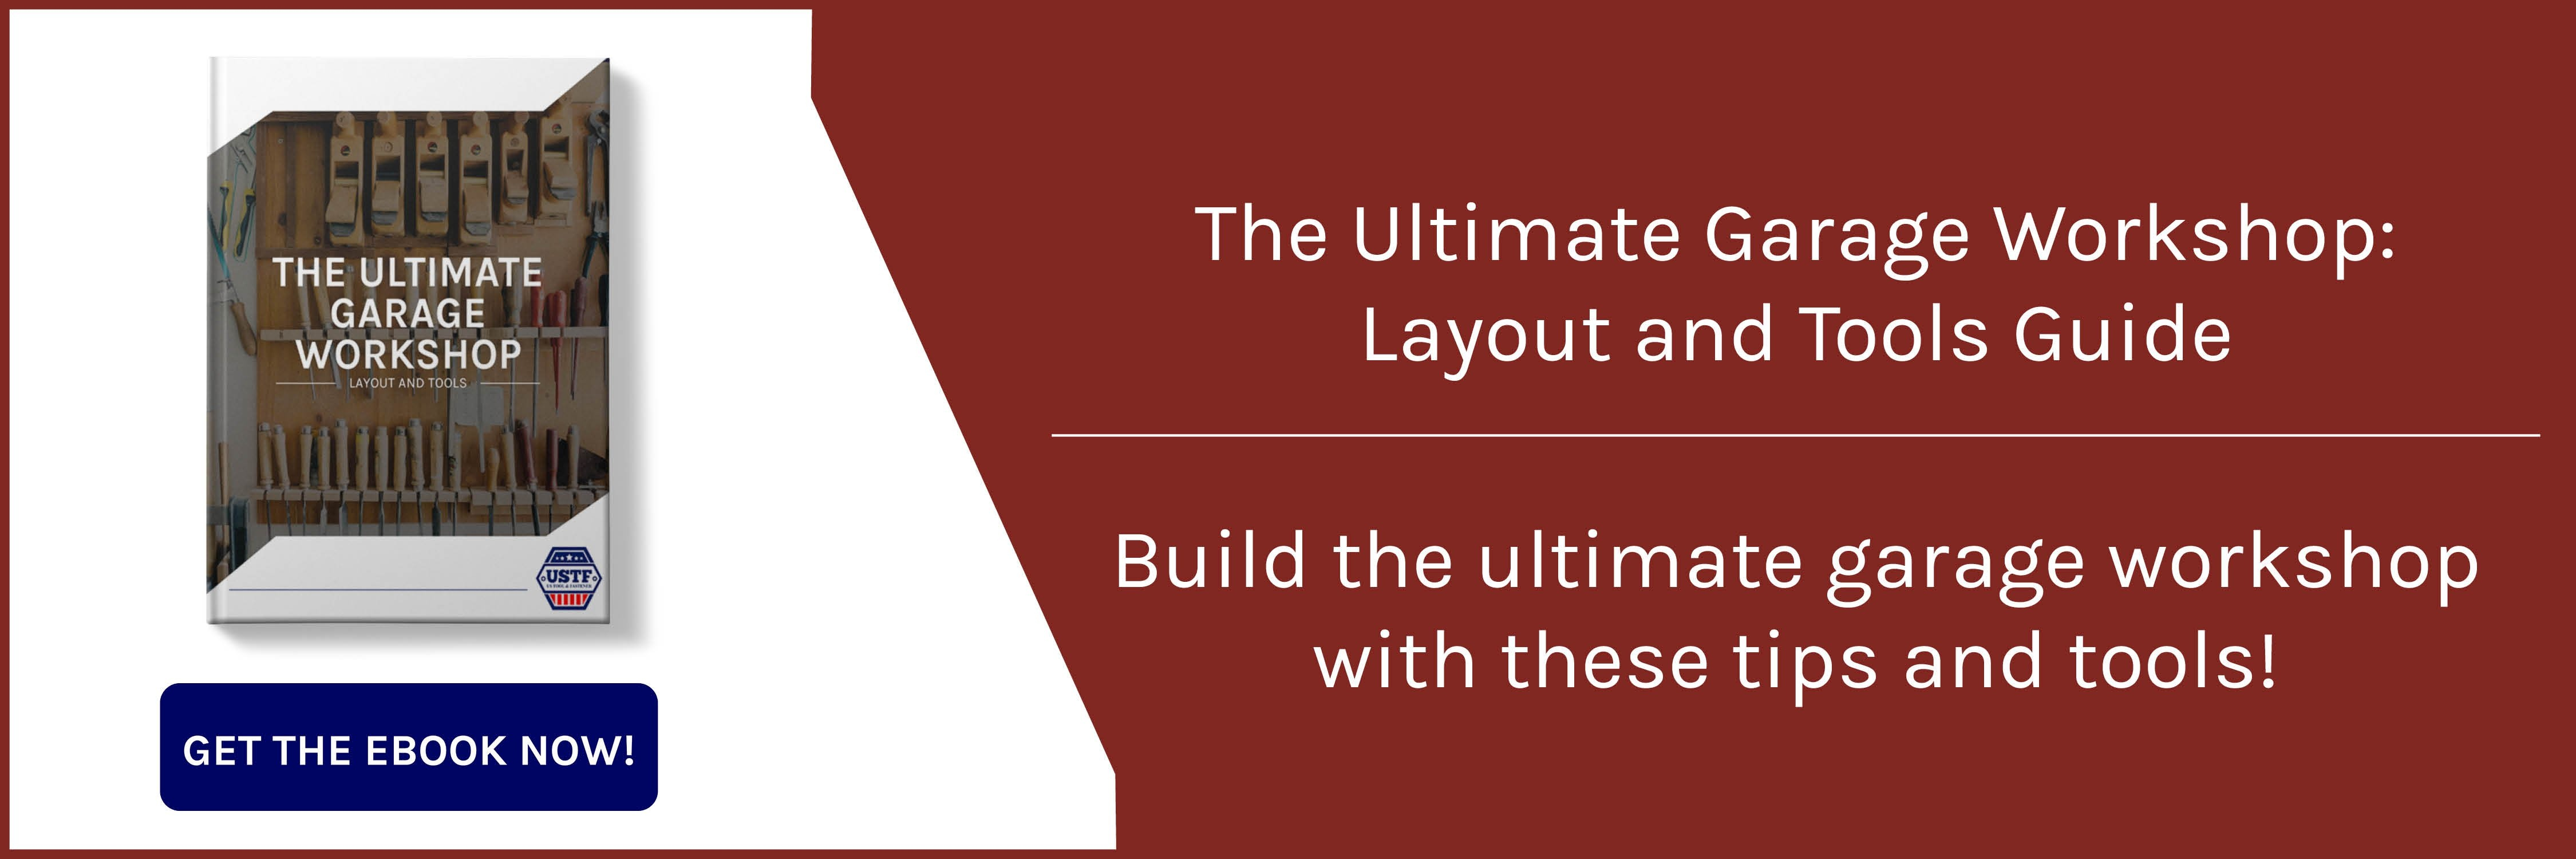 The Ultimate Garage Workshop: Layout and Tools Guide BLOG